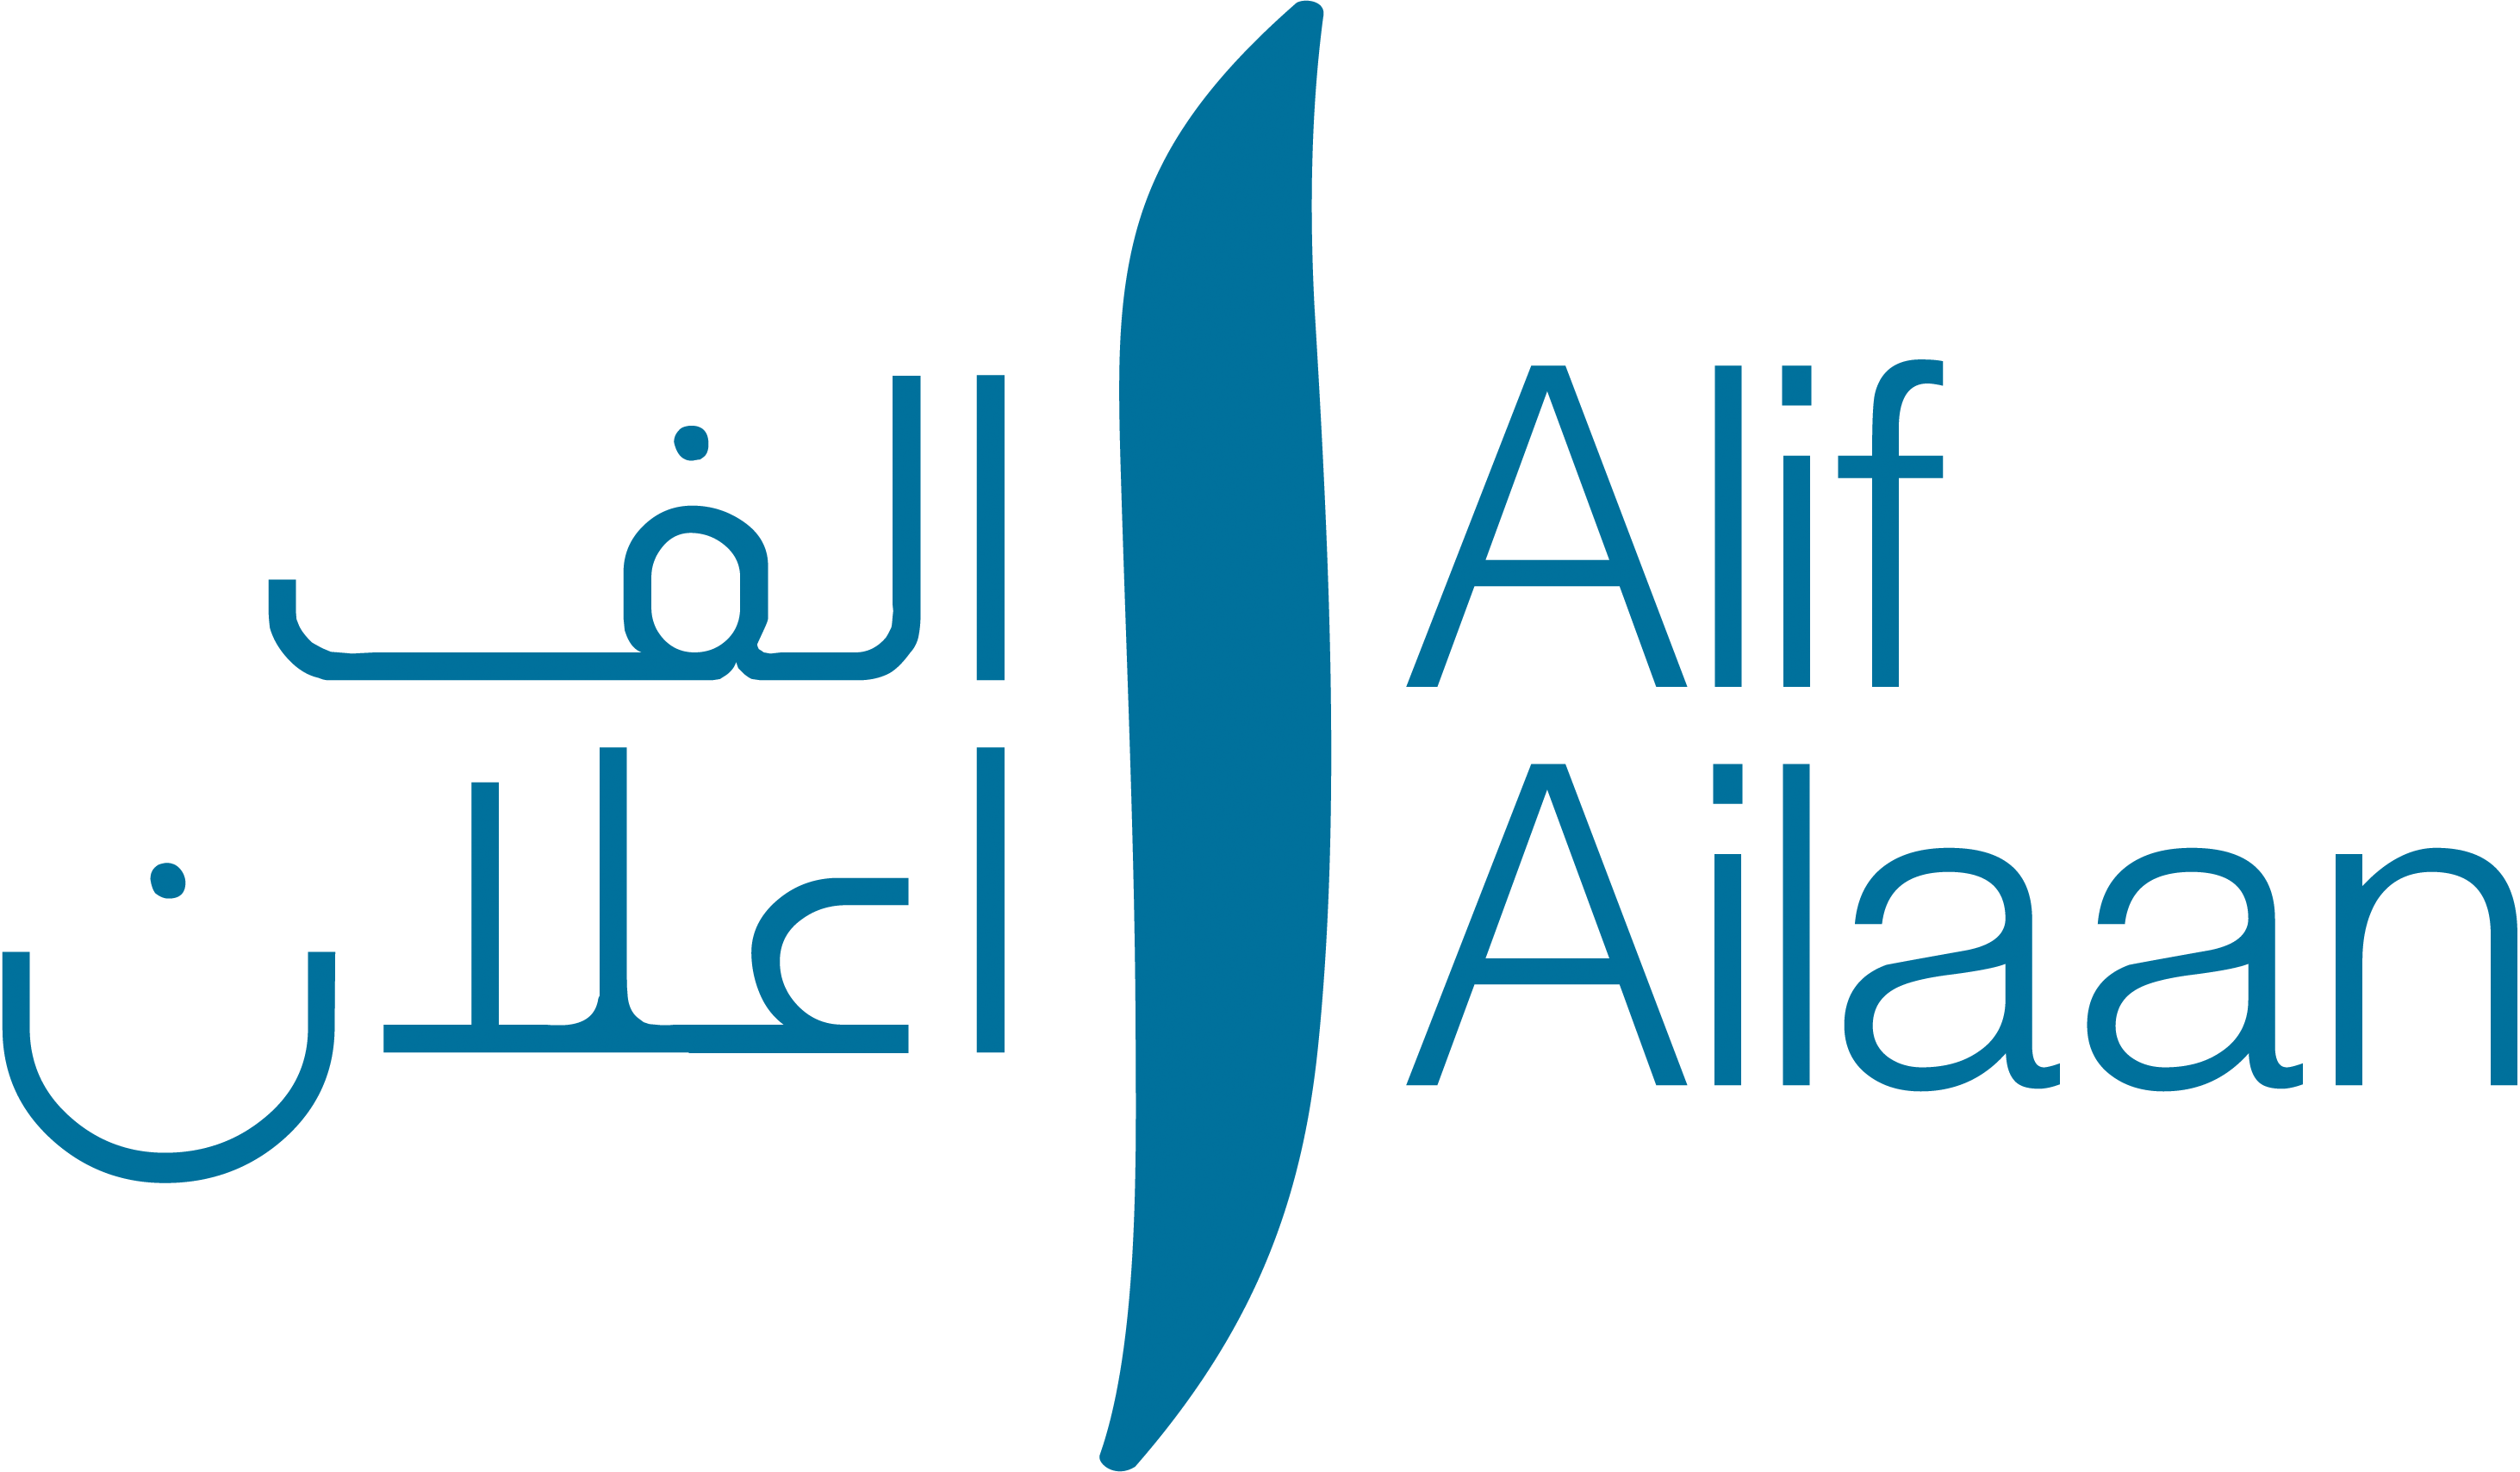 filealif ailaan logo pngpng wikimedia commons